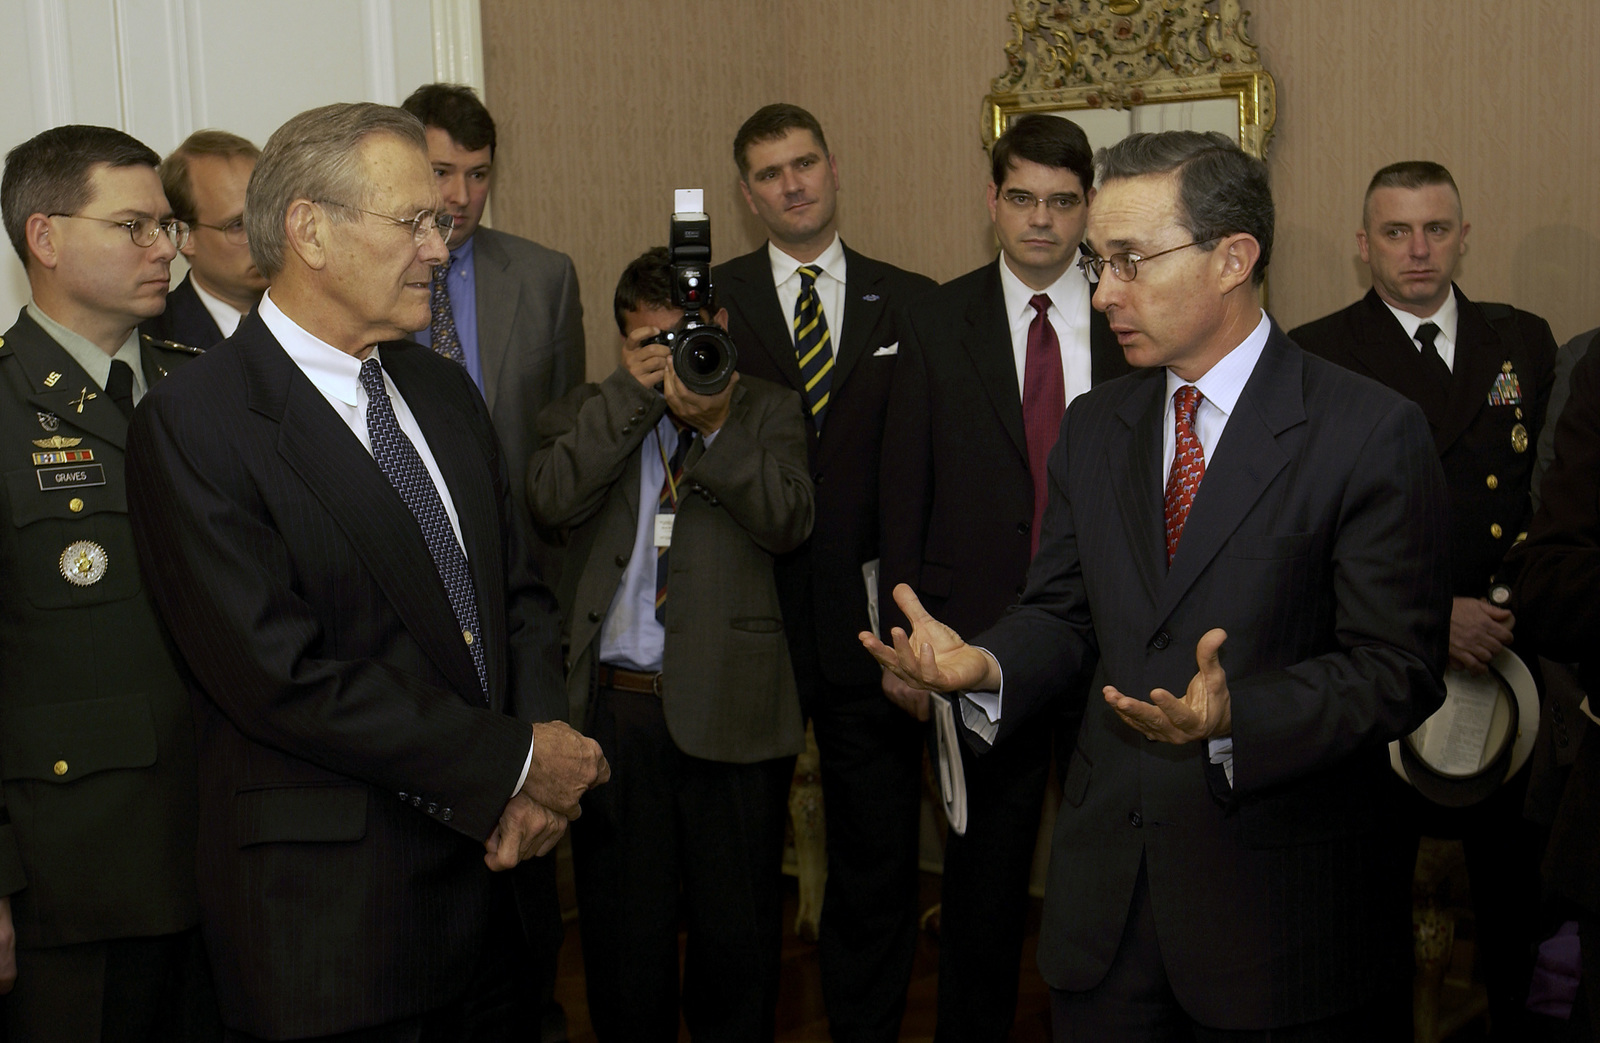 The Honorable Donald H. Rumsfeld, (left) U.S. Secretary of Defense, listens while Colombian President Alvaro Uribe, right, responds to a reporter's question during his visit at the Palacio Narino, Bagot, Colombia, on Aug. 19, 2003. (DoD photo by TECH. SGT. Andy Dunaway) (Released)